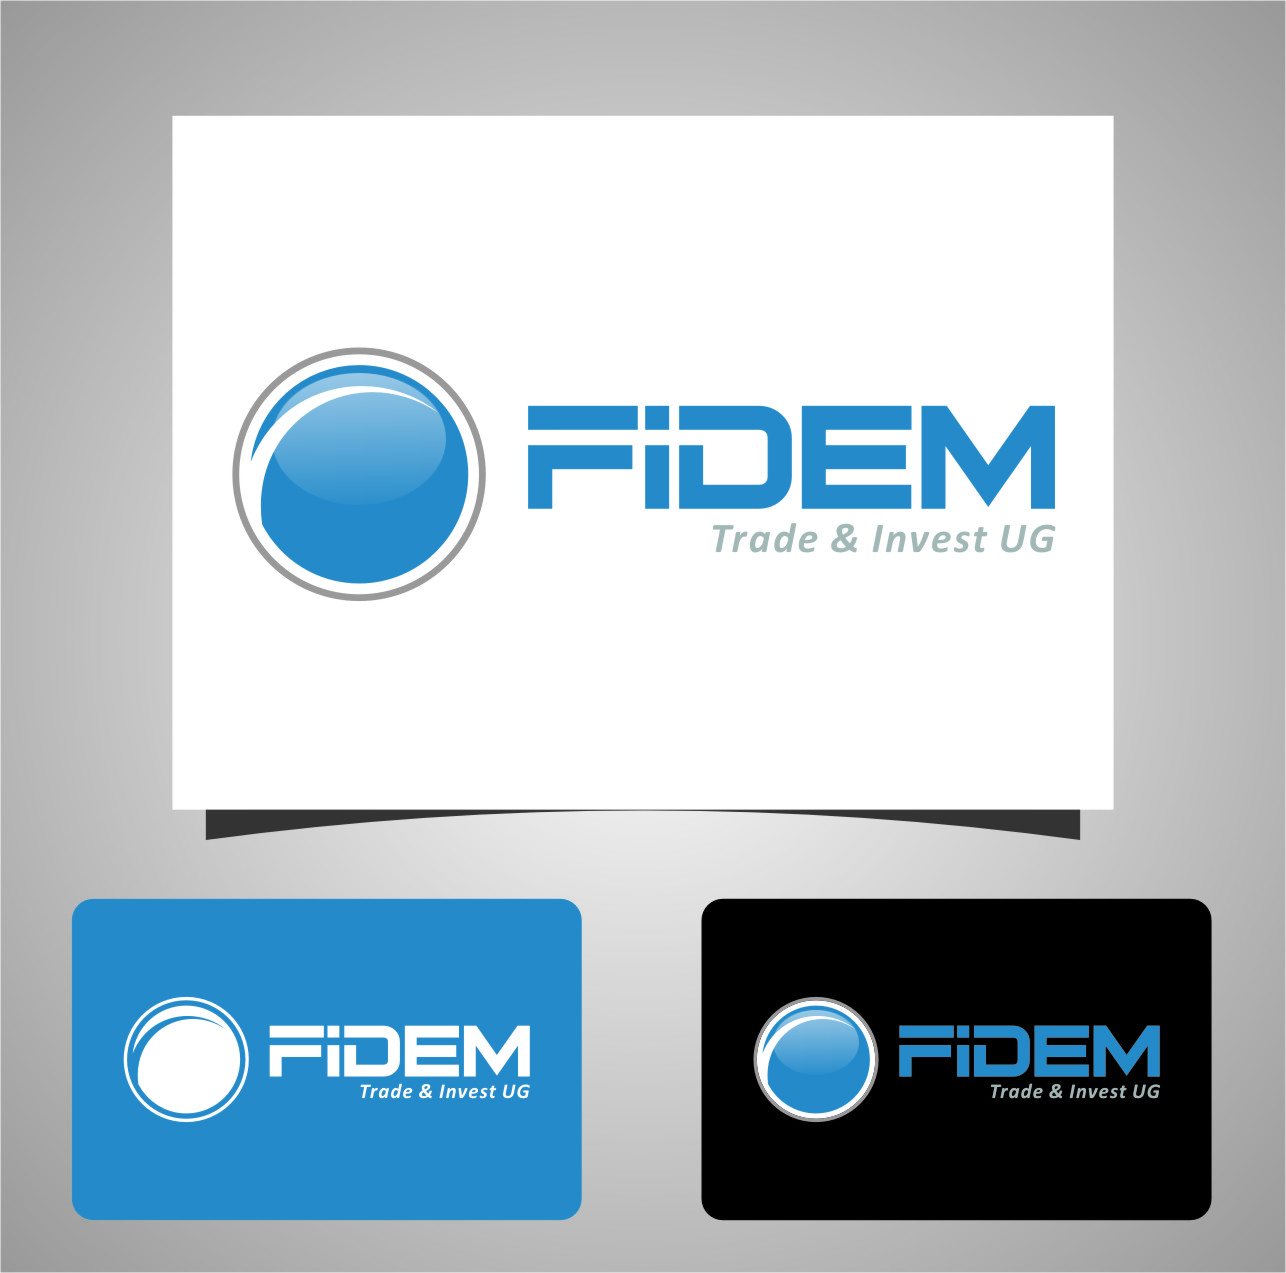 Logo Design by RasYa Muhammad Athaya - Entry No. 686 in the Logo Design Contest Professional Logo Design for FIDEM Trade & Invest UG.